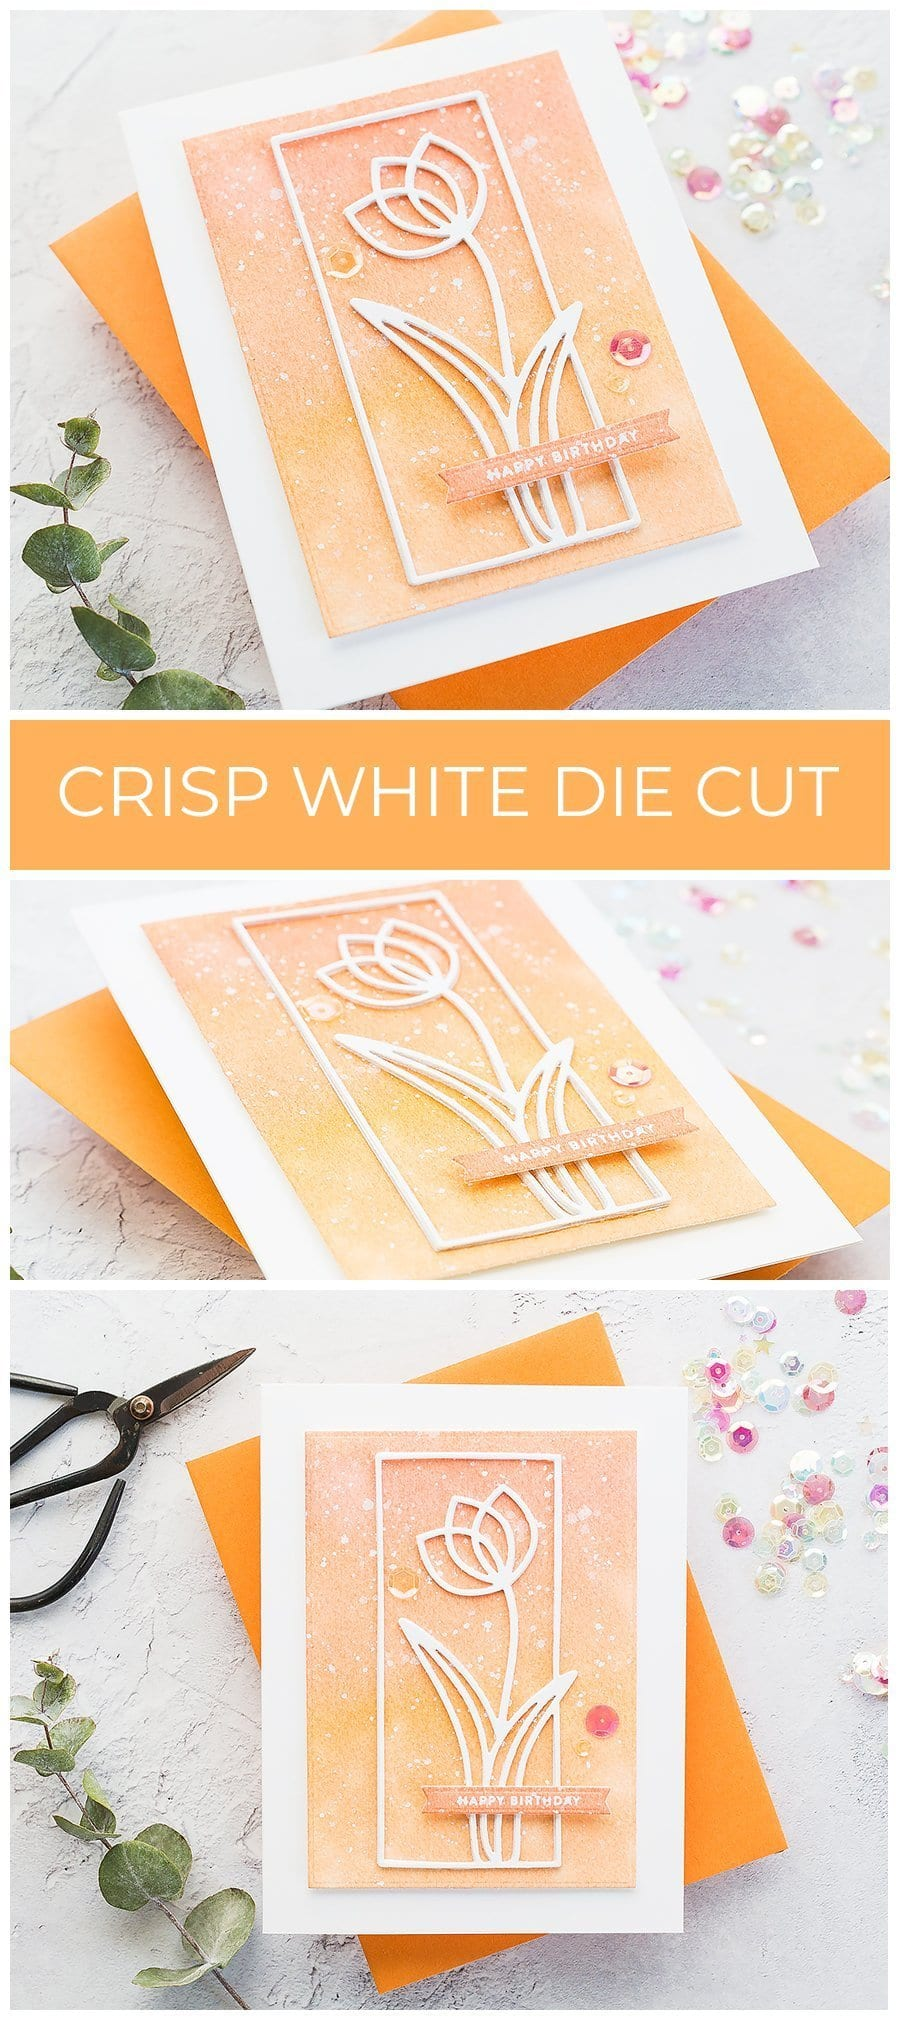 Video taking a first look at the new Daniel Smith watercolor sets and using them to create soft, muted watercoloured backgrounds for crisp white die cuts using dies from the new Diecember release from Simon Says Stamp. Handmade birthday cards by Debby Hughes. Find out more here: https://limedoodledesign.com/2018/12/video-first-look-daniel-smith-half-pan-sets-diecember-blog-hop-giveaway/